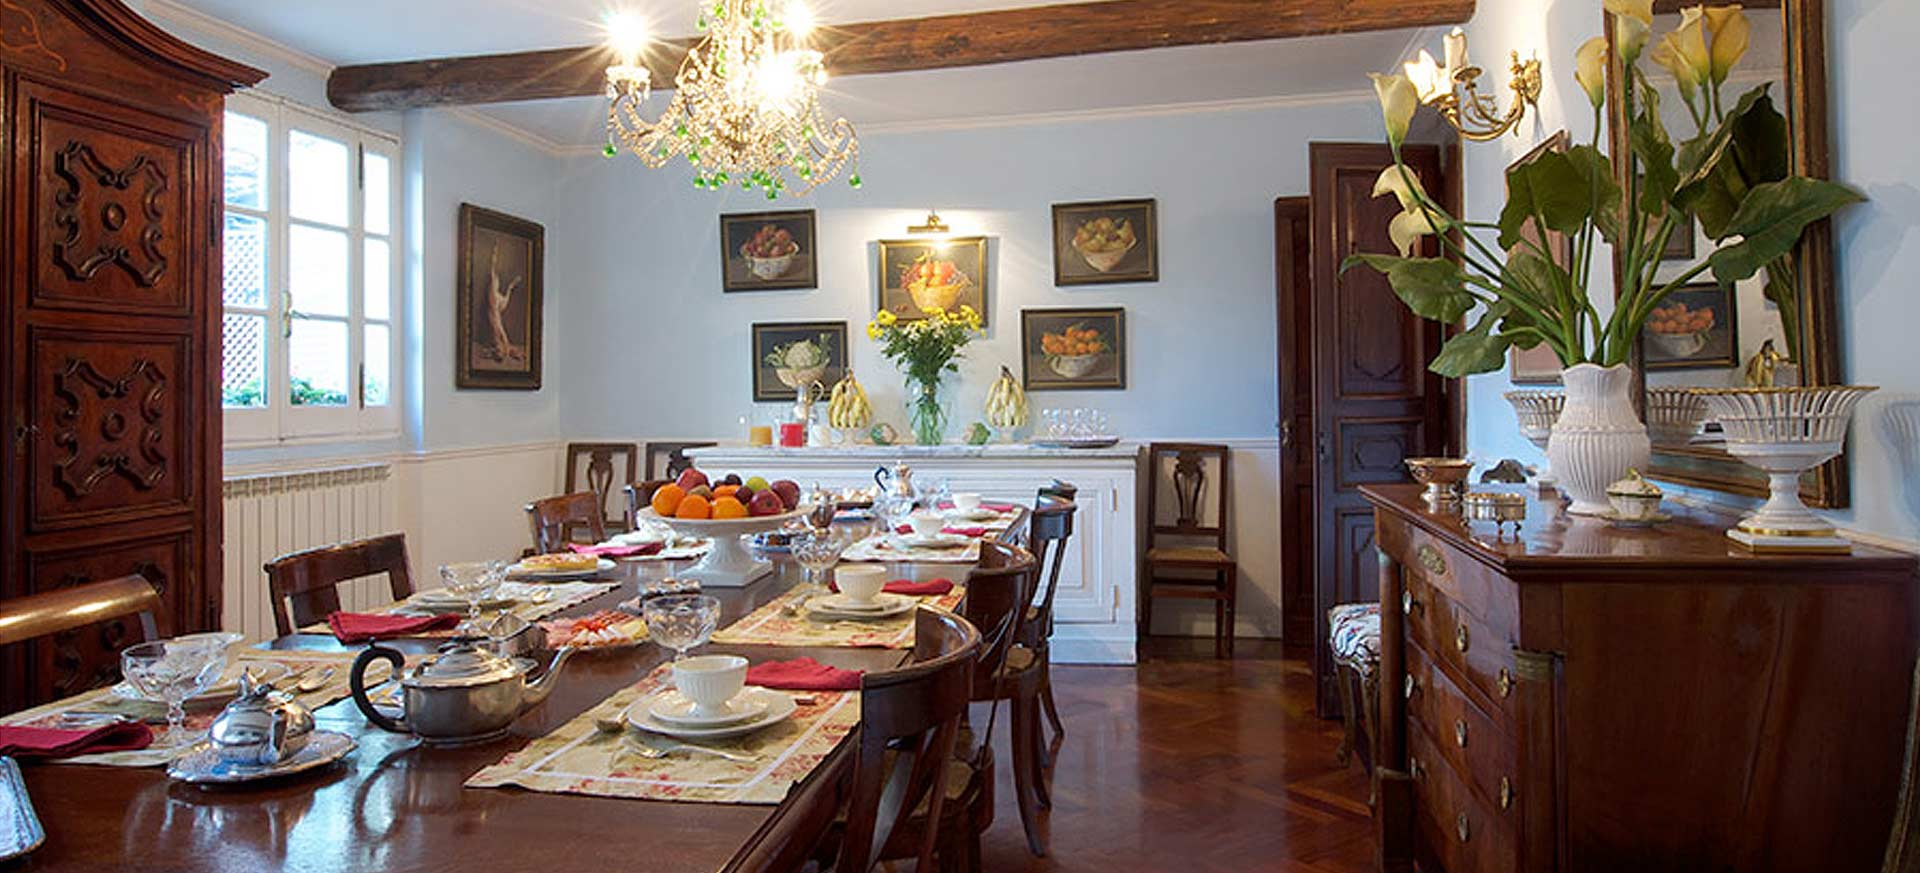 Bed and Breakfast Trastevere - Rome